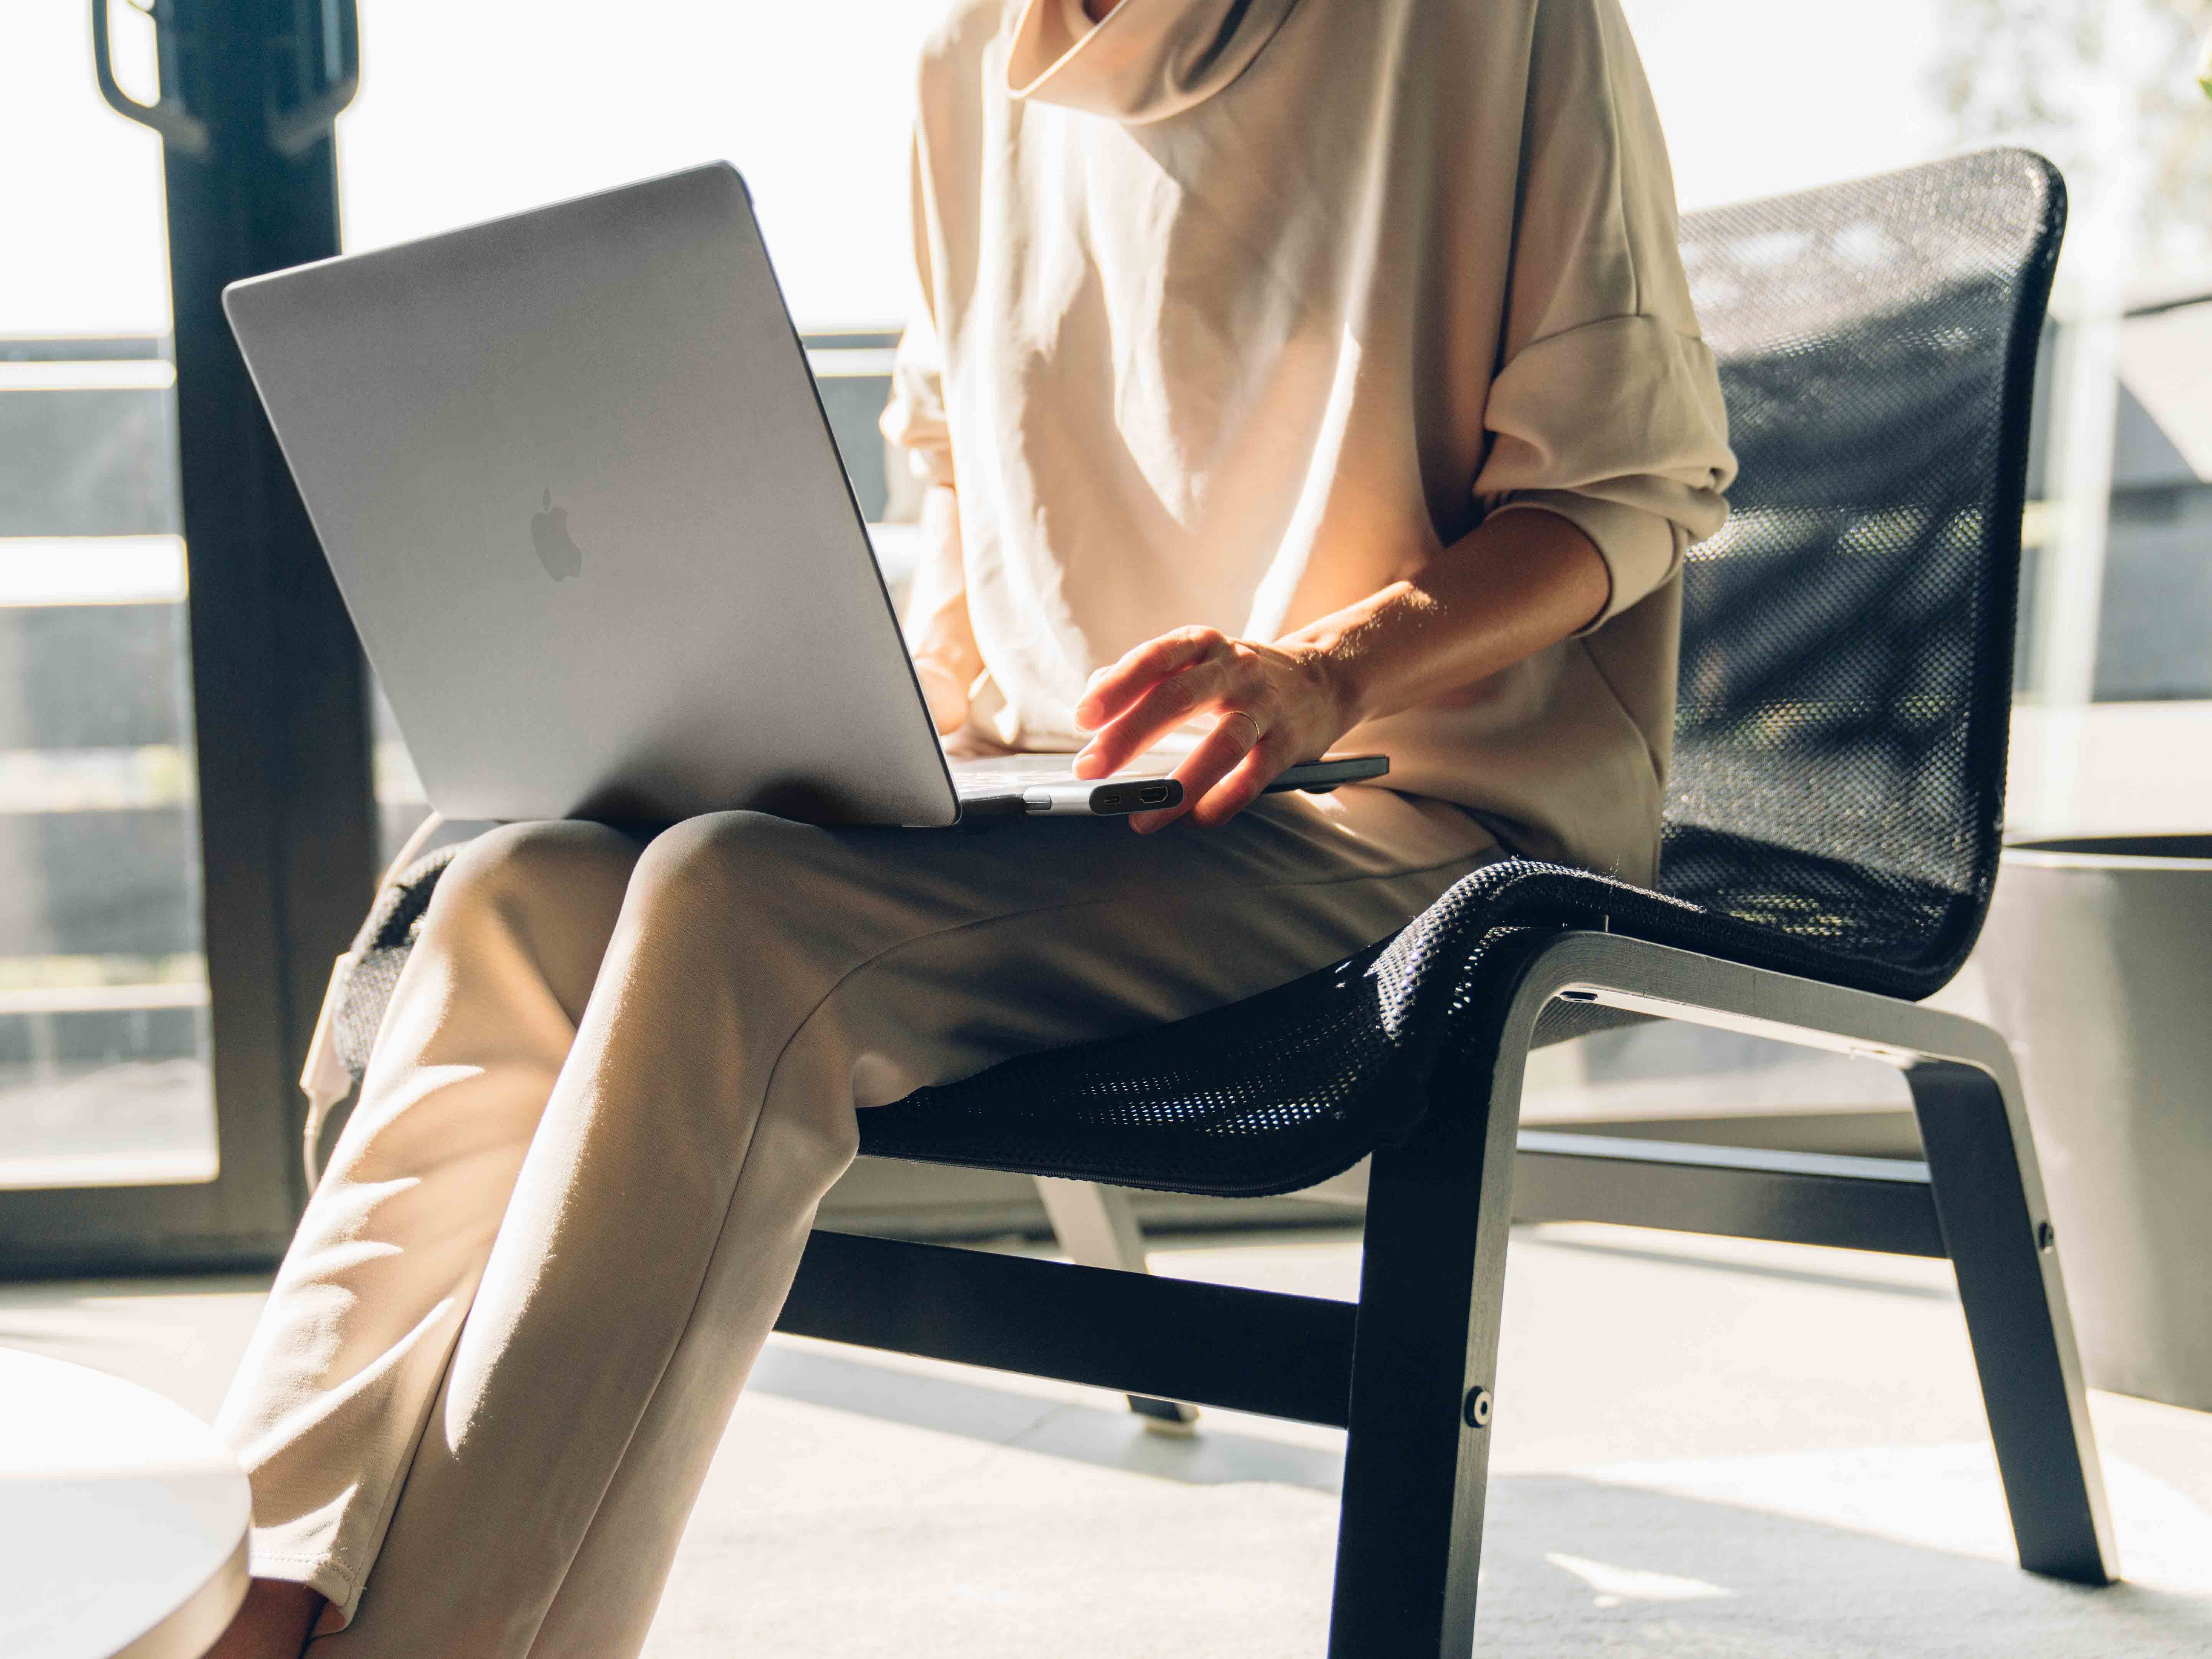 Woman sit on chair with MacBook